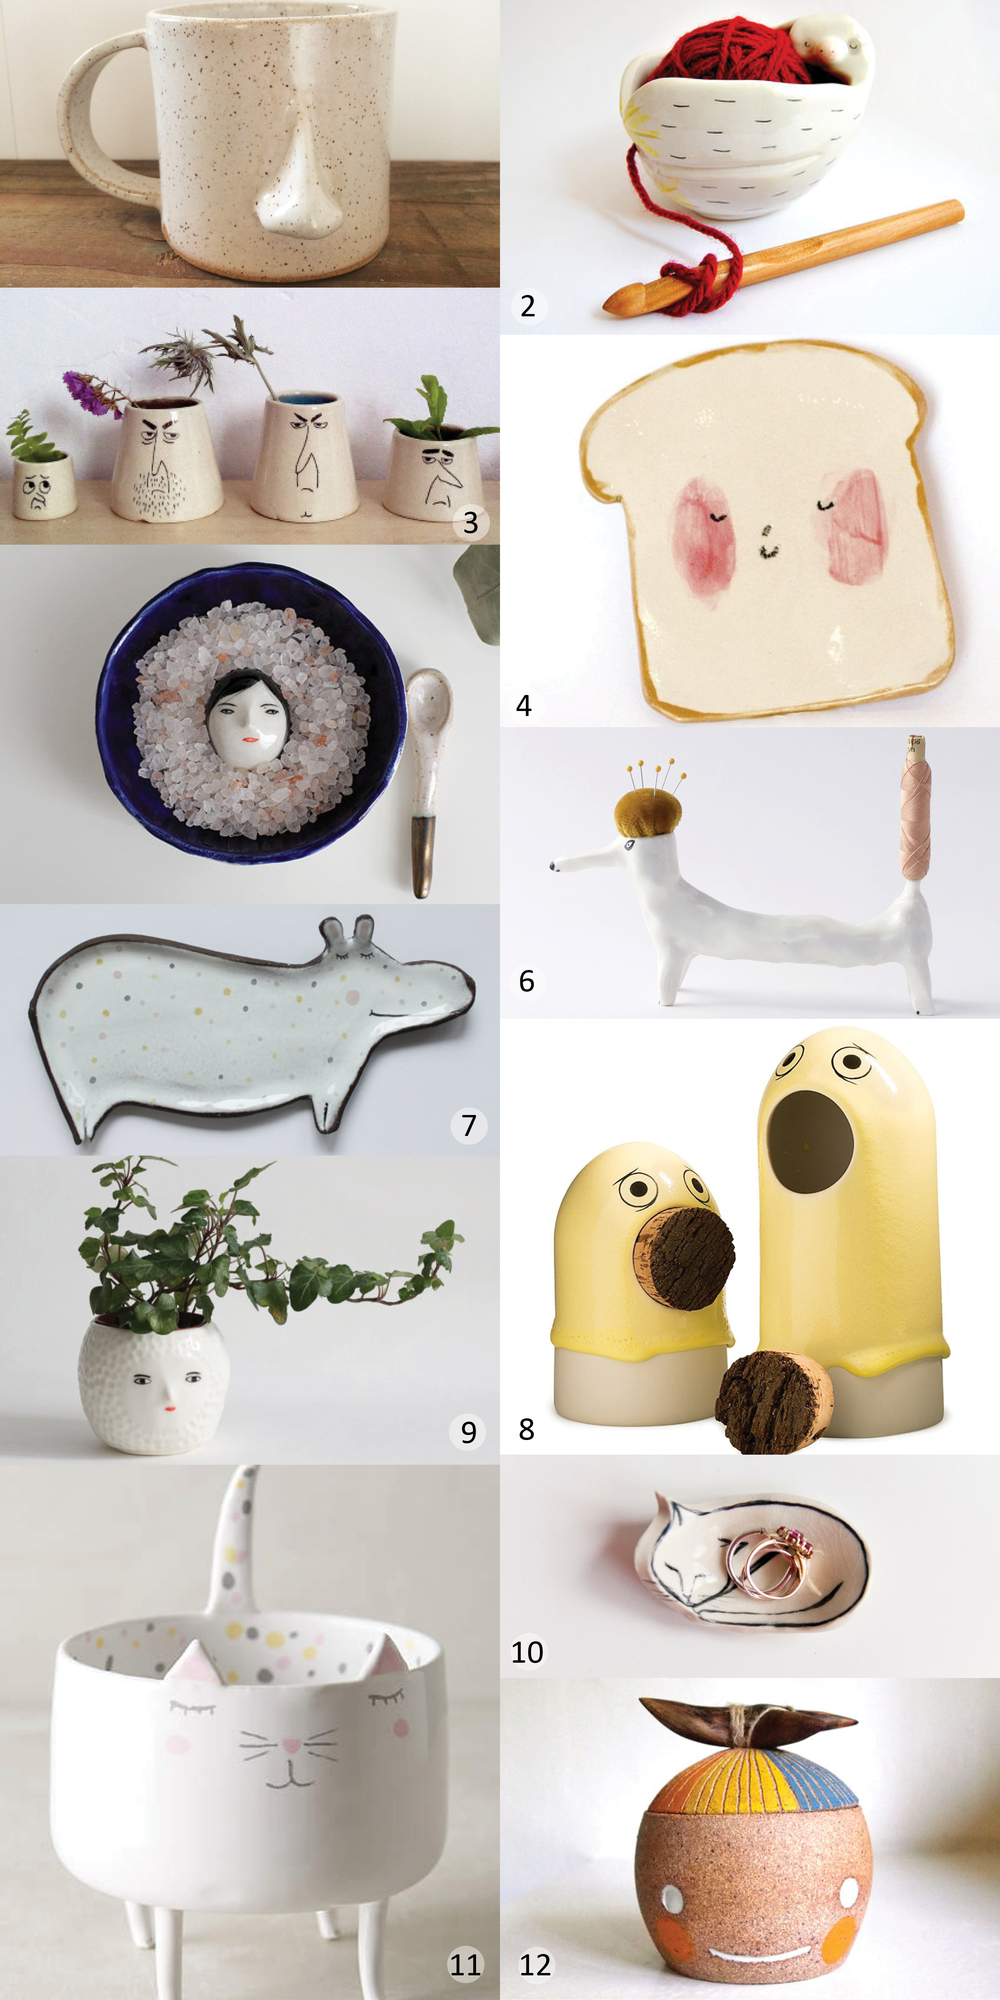 1. Nose mug | 2. Baby sloth yarn bowl | 3. Face vases | 4. Toast plate | 5. Buried Under the Snow salt dish set | 6. Sewing dog | 7. Hippo spoon rest | 8. Sing porcelain container | 9. 3D face pot | 10. Mini cat ring dish | 11. Domesticated trinket dish | 12. Beastie lidded container with wood handle